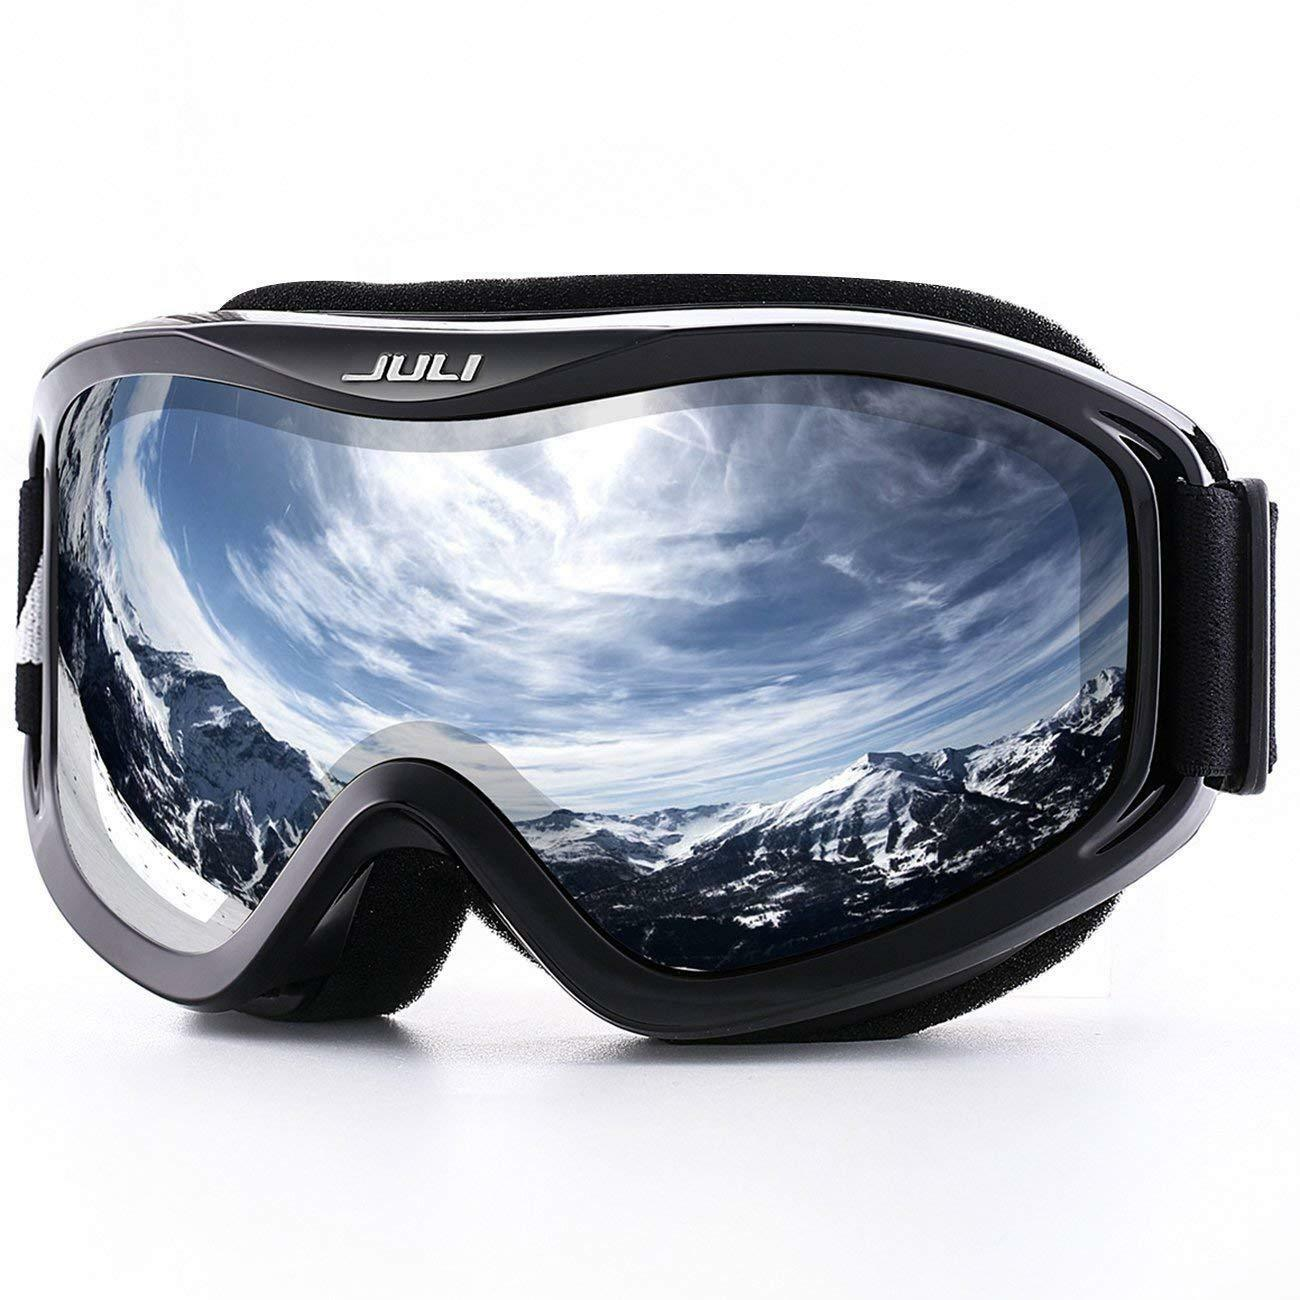 Feier Yusi Adult Professional Ski Goggles Snowmobile Snowboard Skate Snow Skiing Goggles with 100/% UV400 Protection Bright Lens TPC Frame Material Anti Sand Wind /& UV Suitable Hiking Surfing Skiing